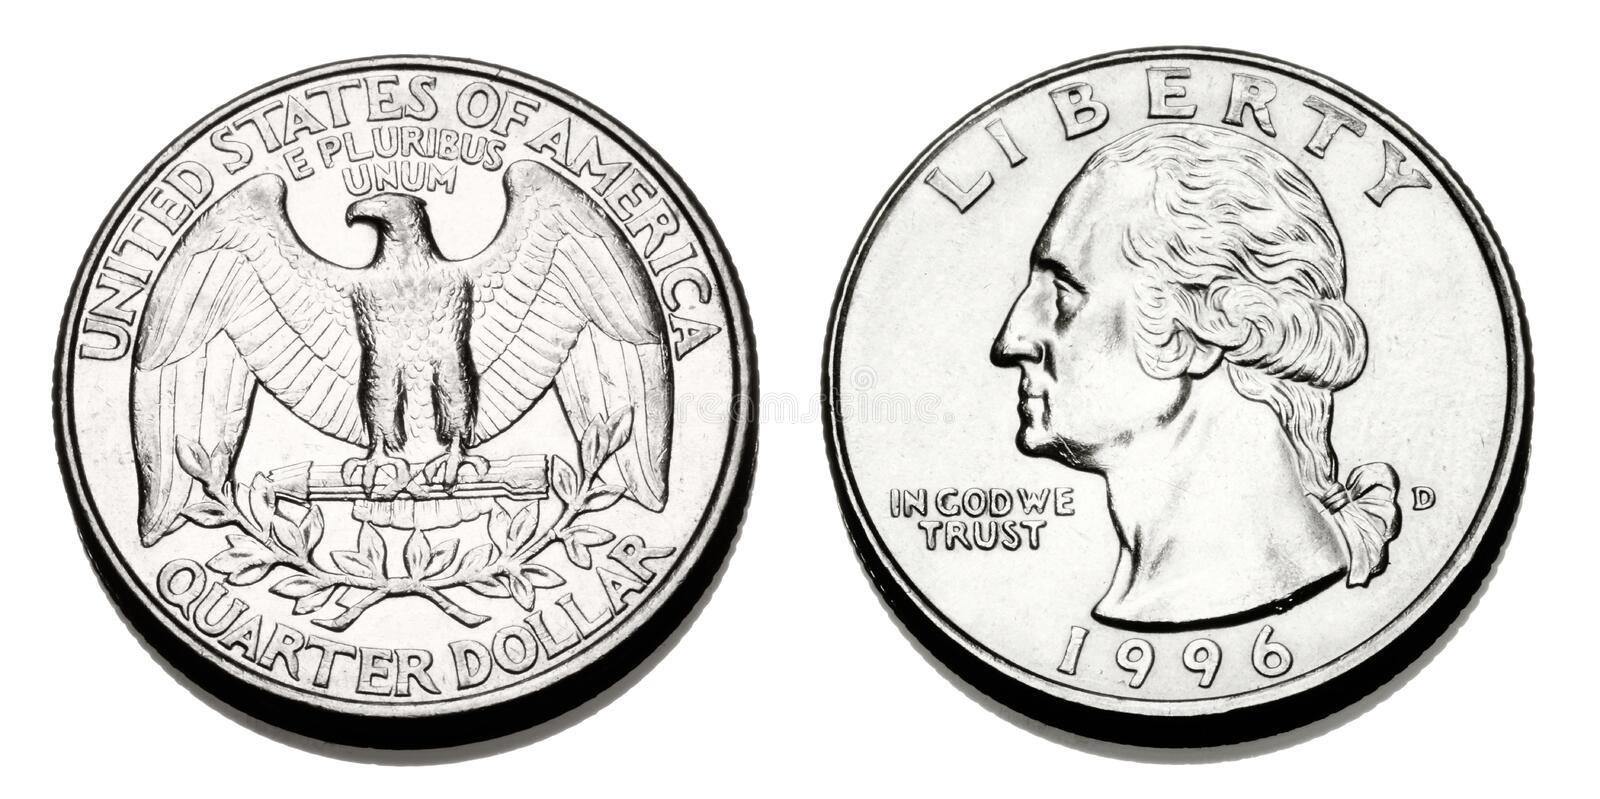 Obverse and reverse of a United States Quarter Dollar. A United states Quarter coin, showing the obverse and reverse sides stock images